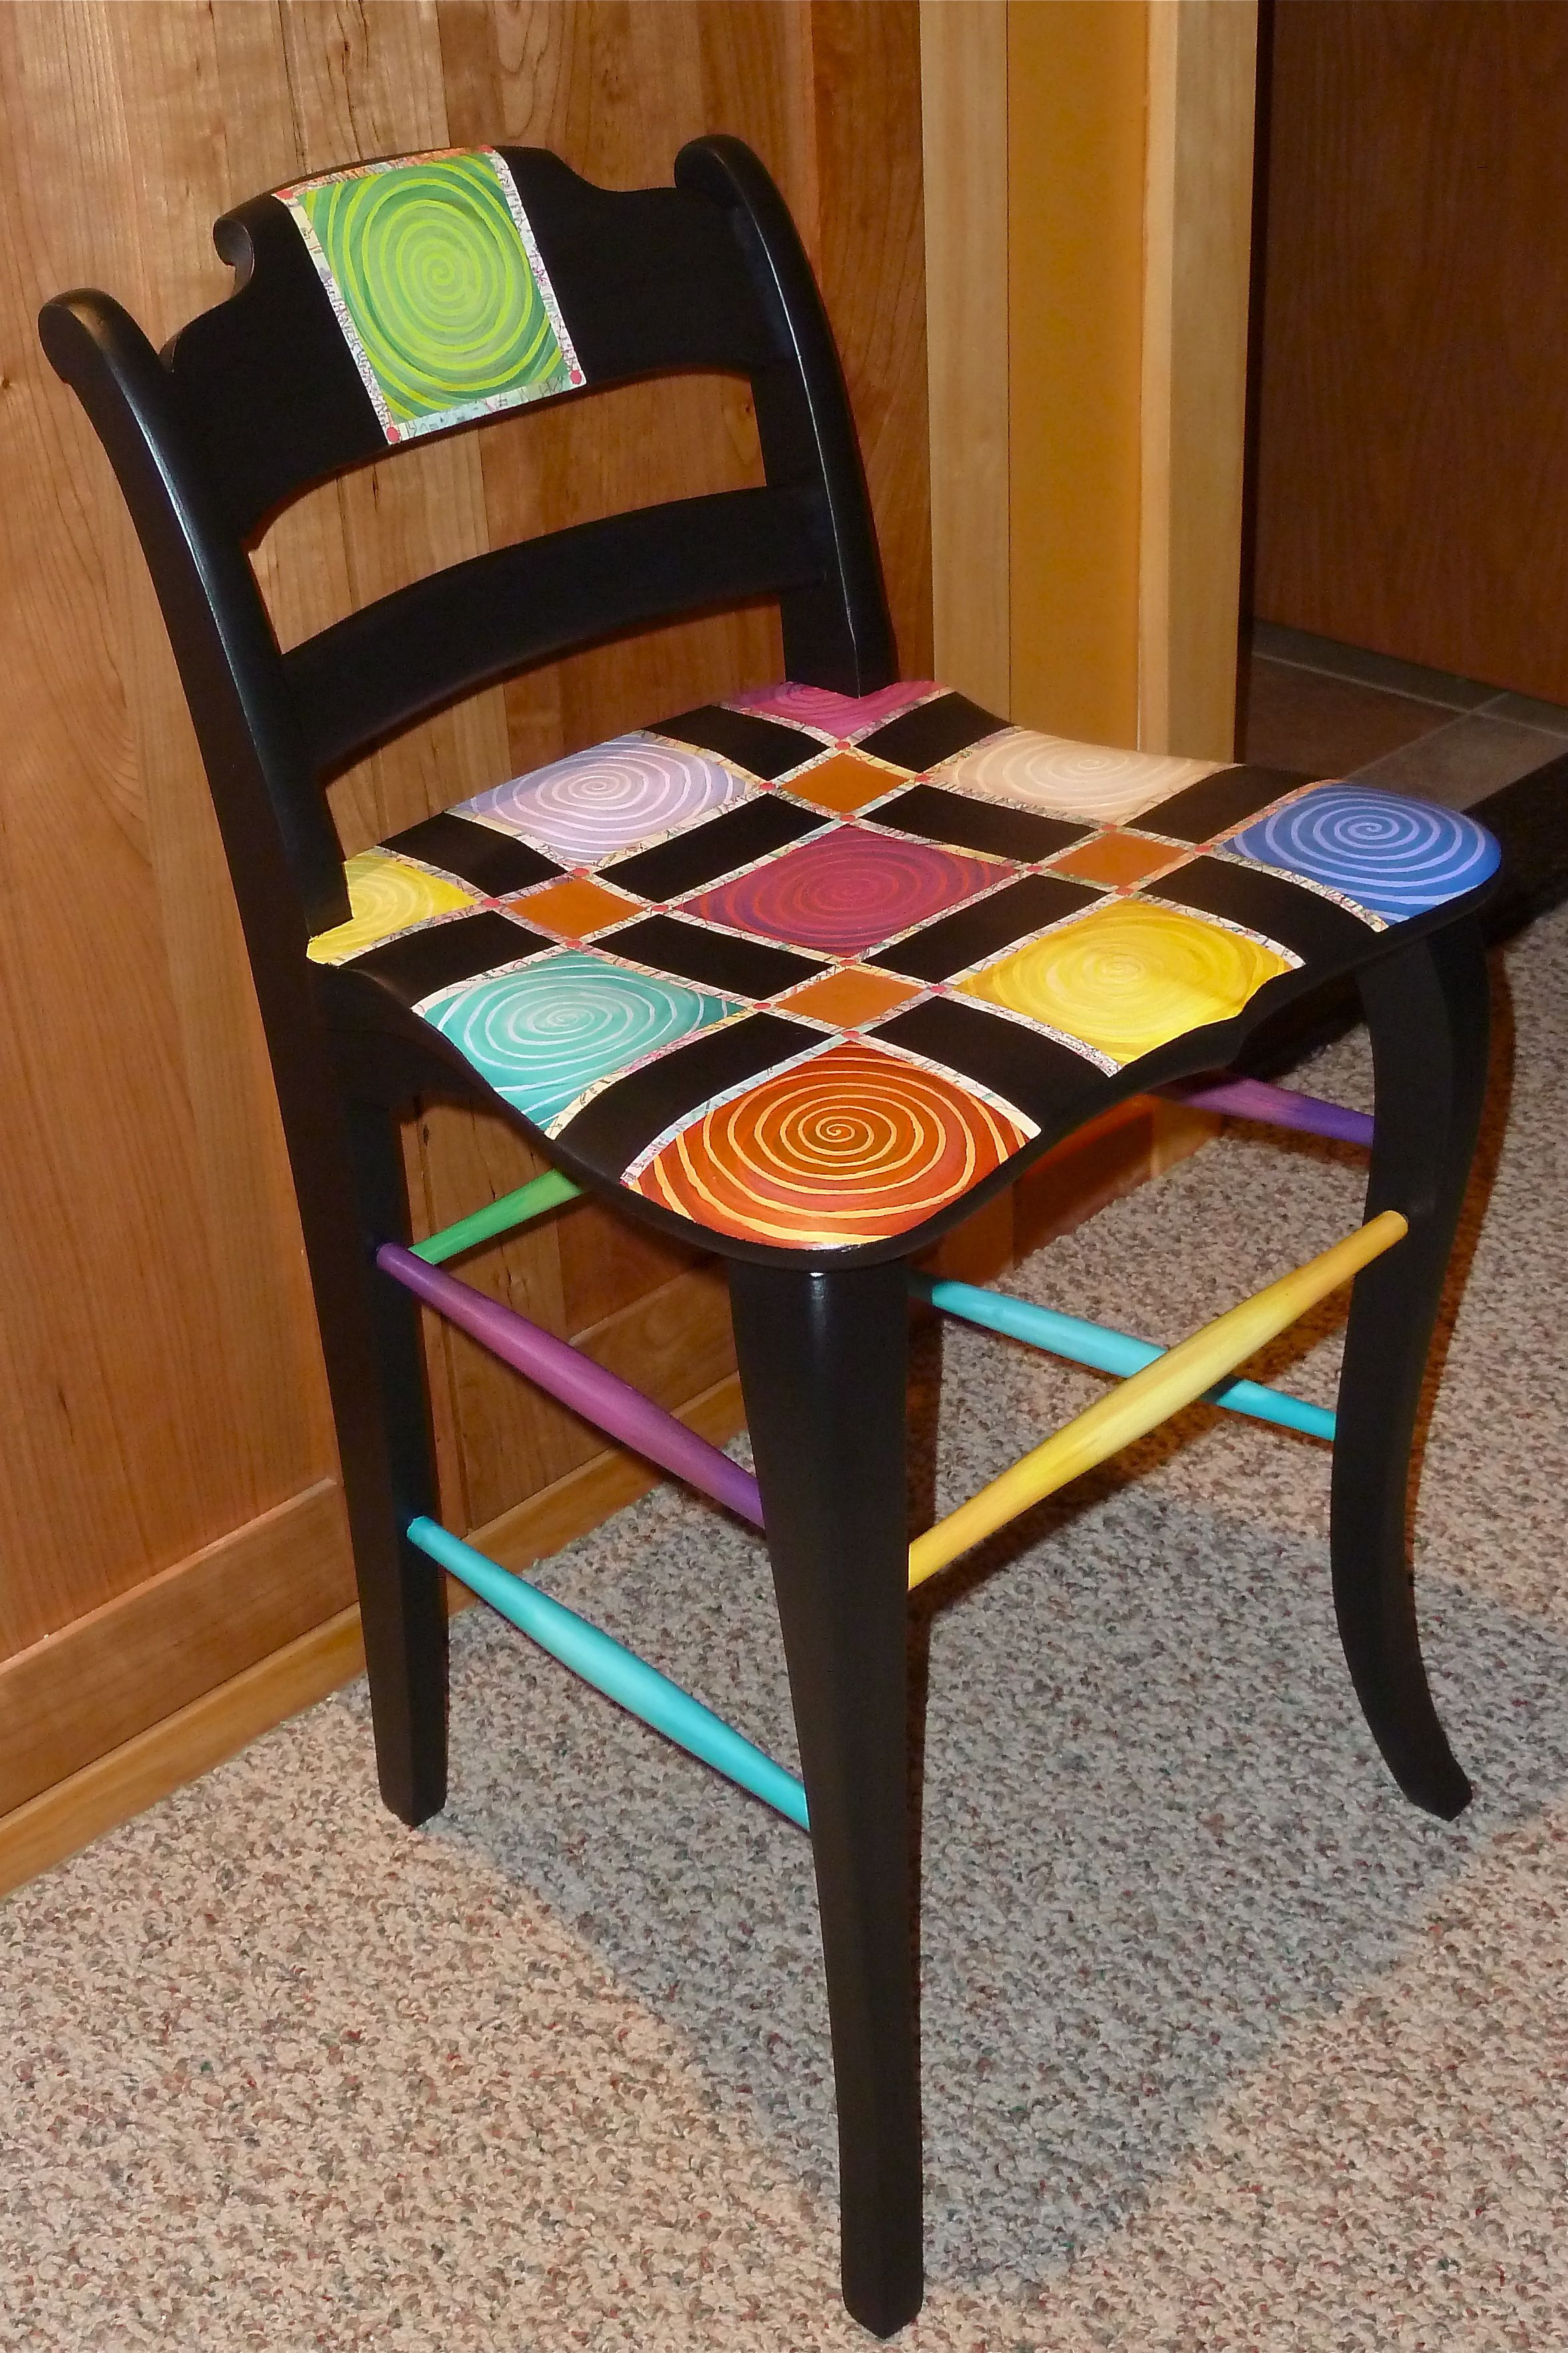 Swirly Chair Acrylic Glaze Paper Map Strips Michelle Taylor